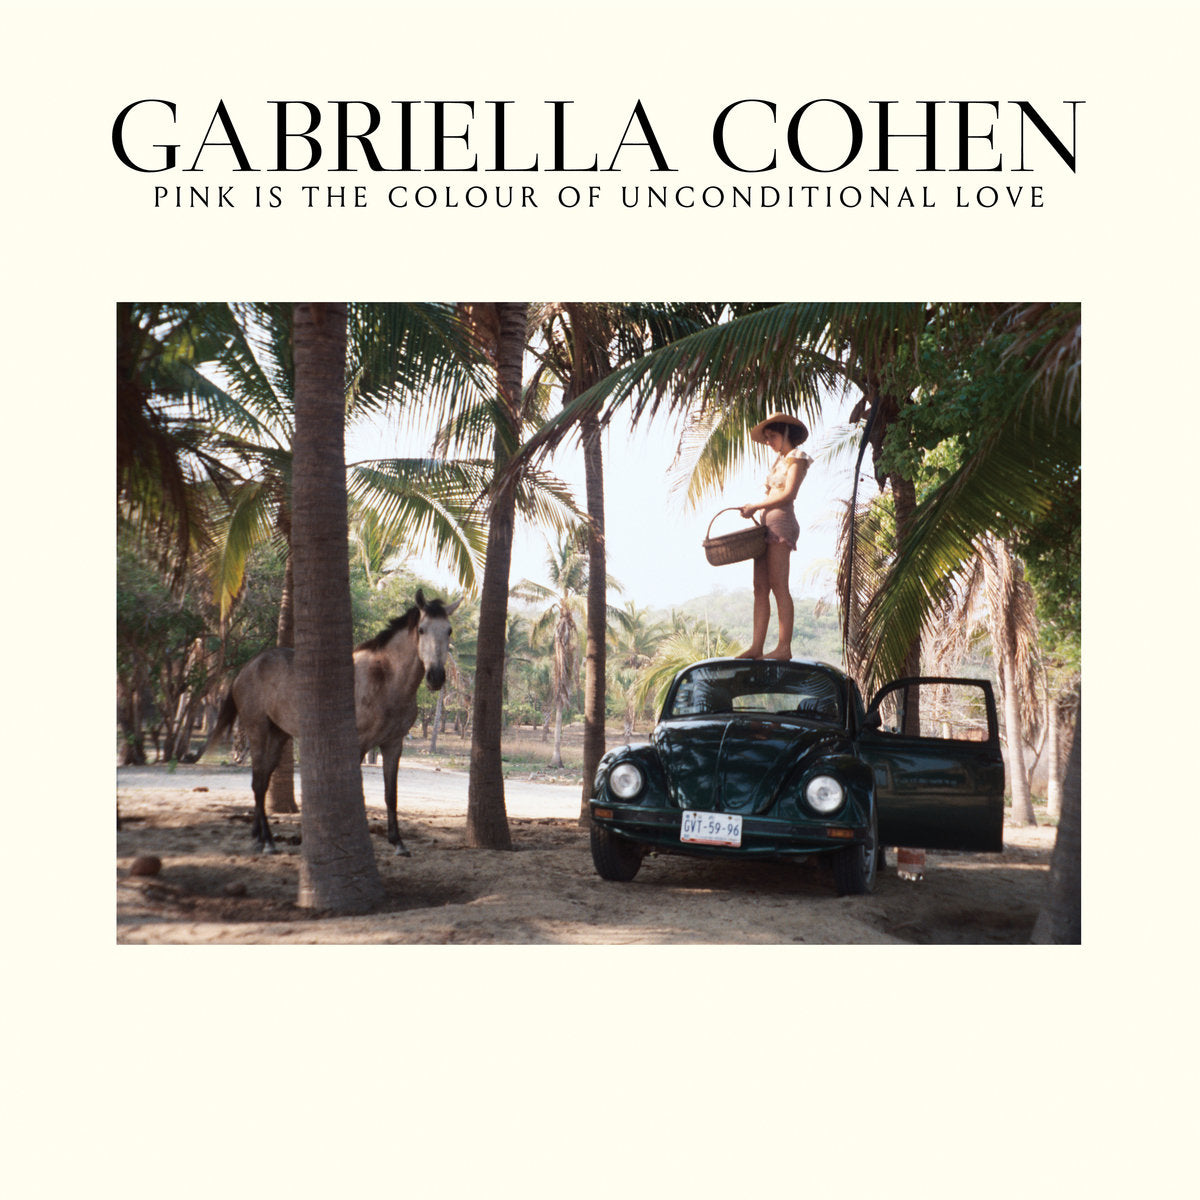 Gabriella Cohen - Pink Is the Colour of Unconditional Love LP